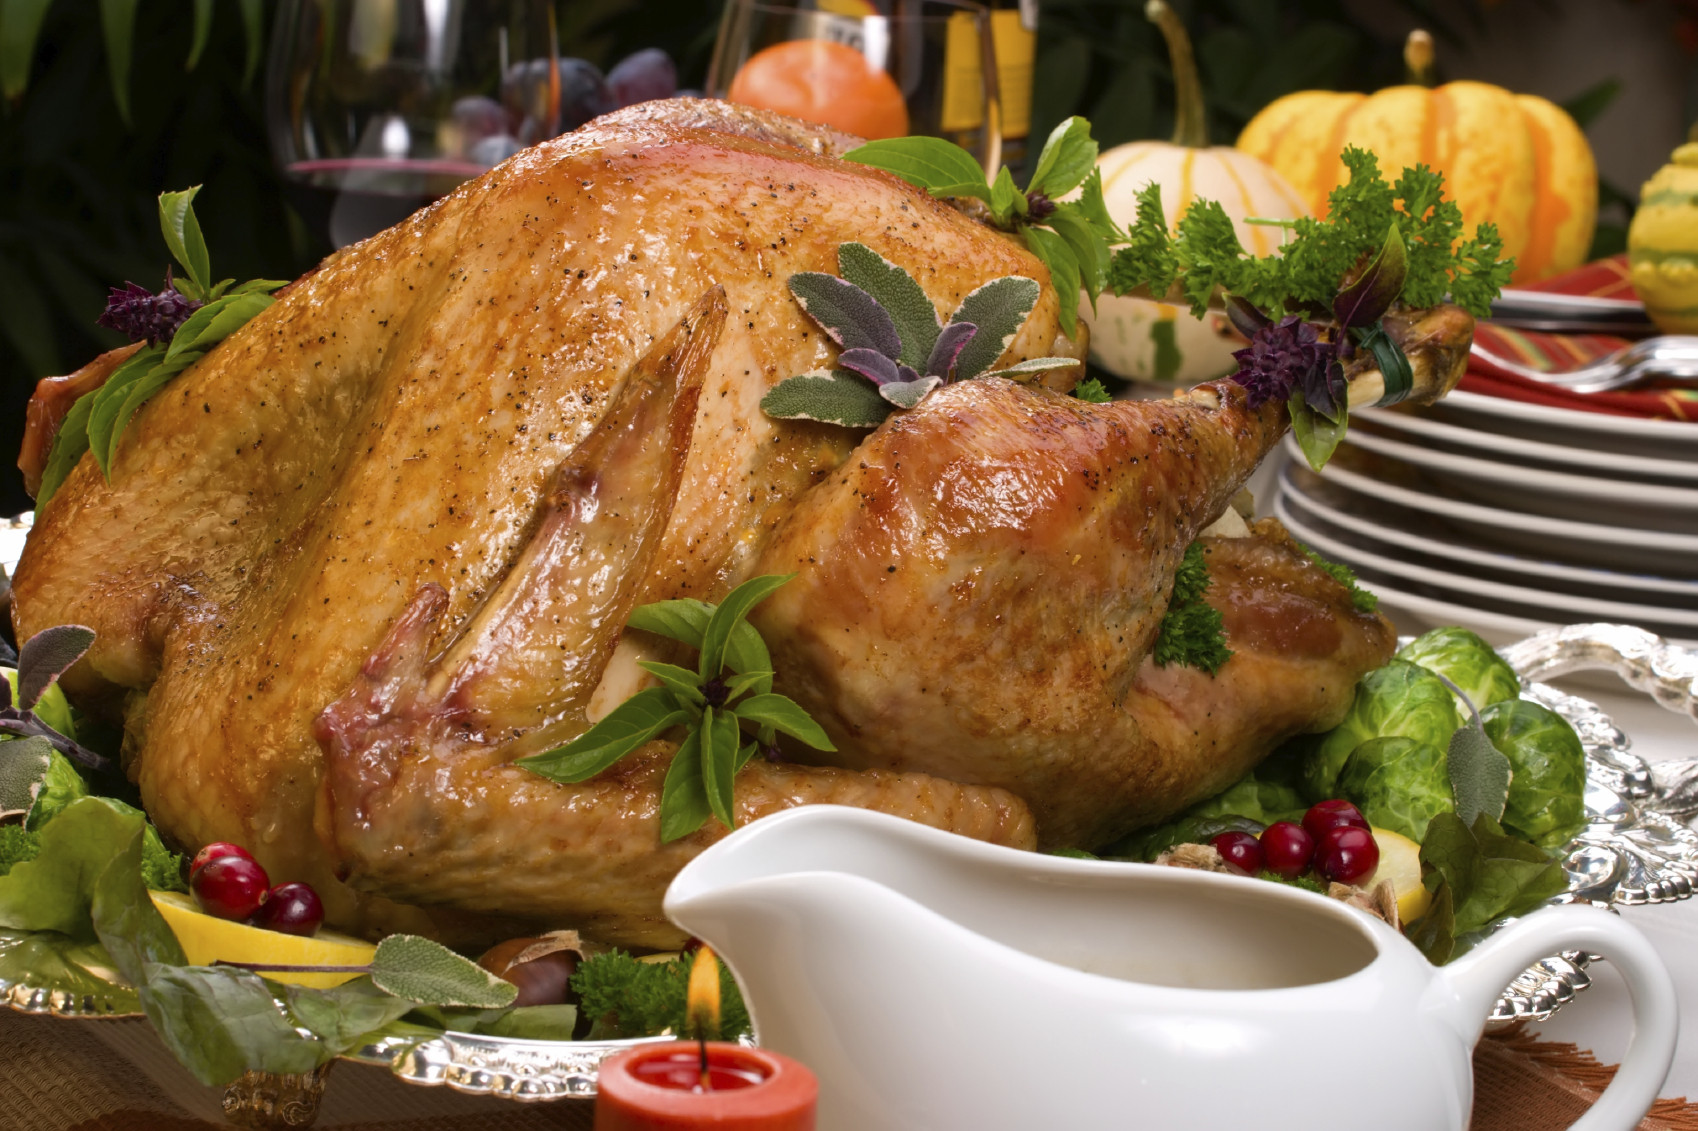 Prepare Thanksgiving Turkey  Tips for preparing your holiday turkey – News from